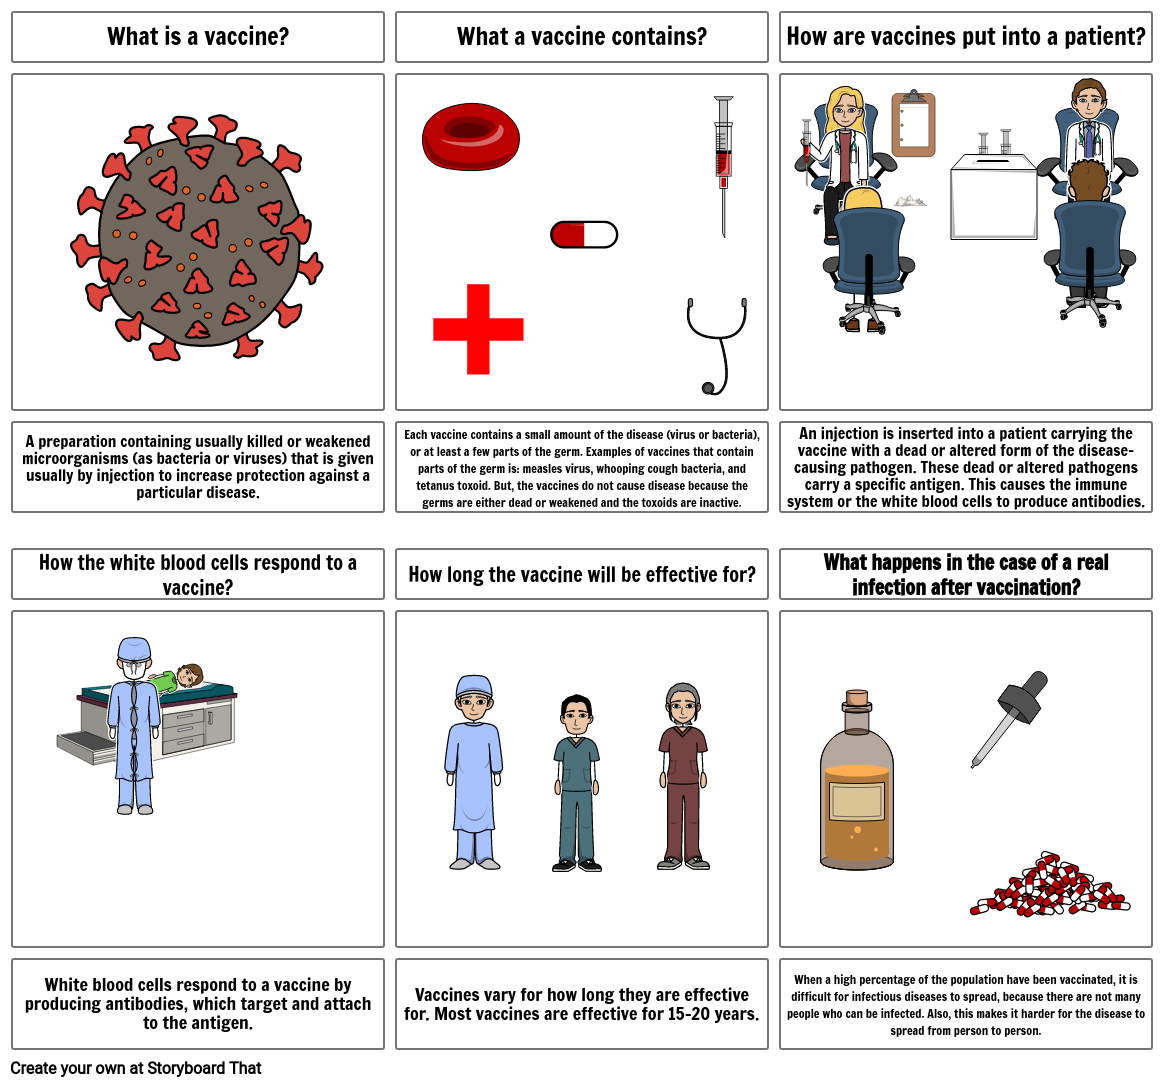 Science - How do vaccinations work?